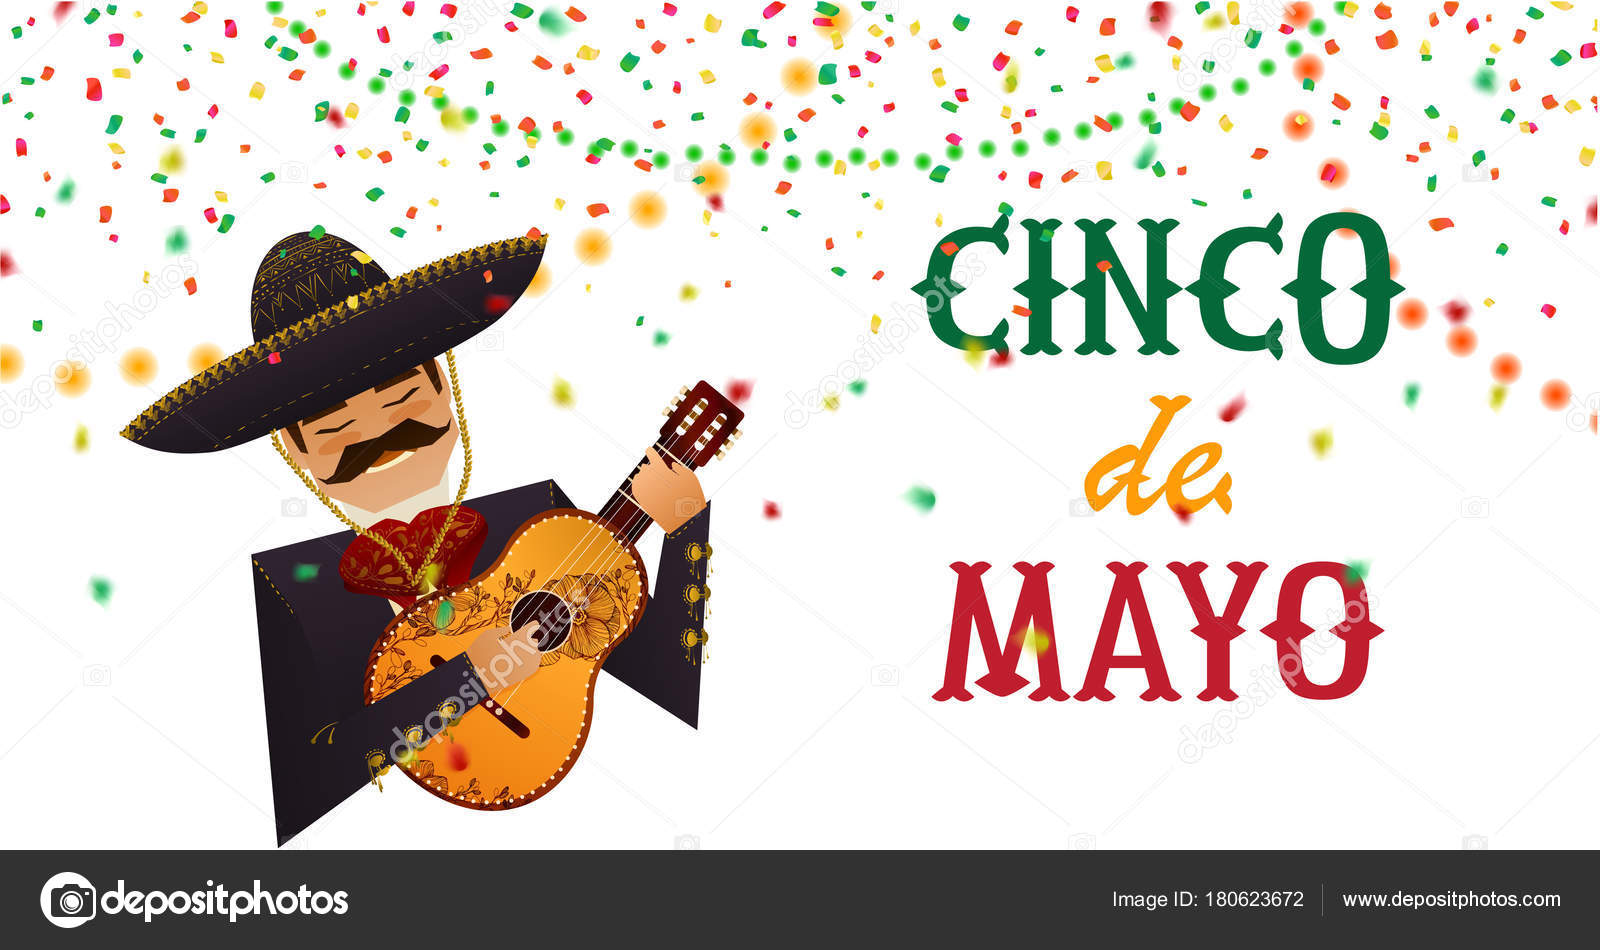 Cinco mayo poster man traditional mexican costume guitar sombrero cinco de mayo poster man in traditional mexican costume with guitar sombrero greetings background for celebration hand drawn elements flat design kristyandbryce Gallery